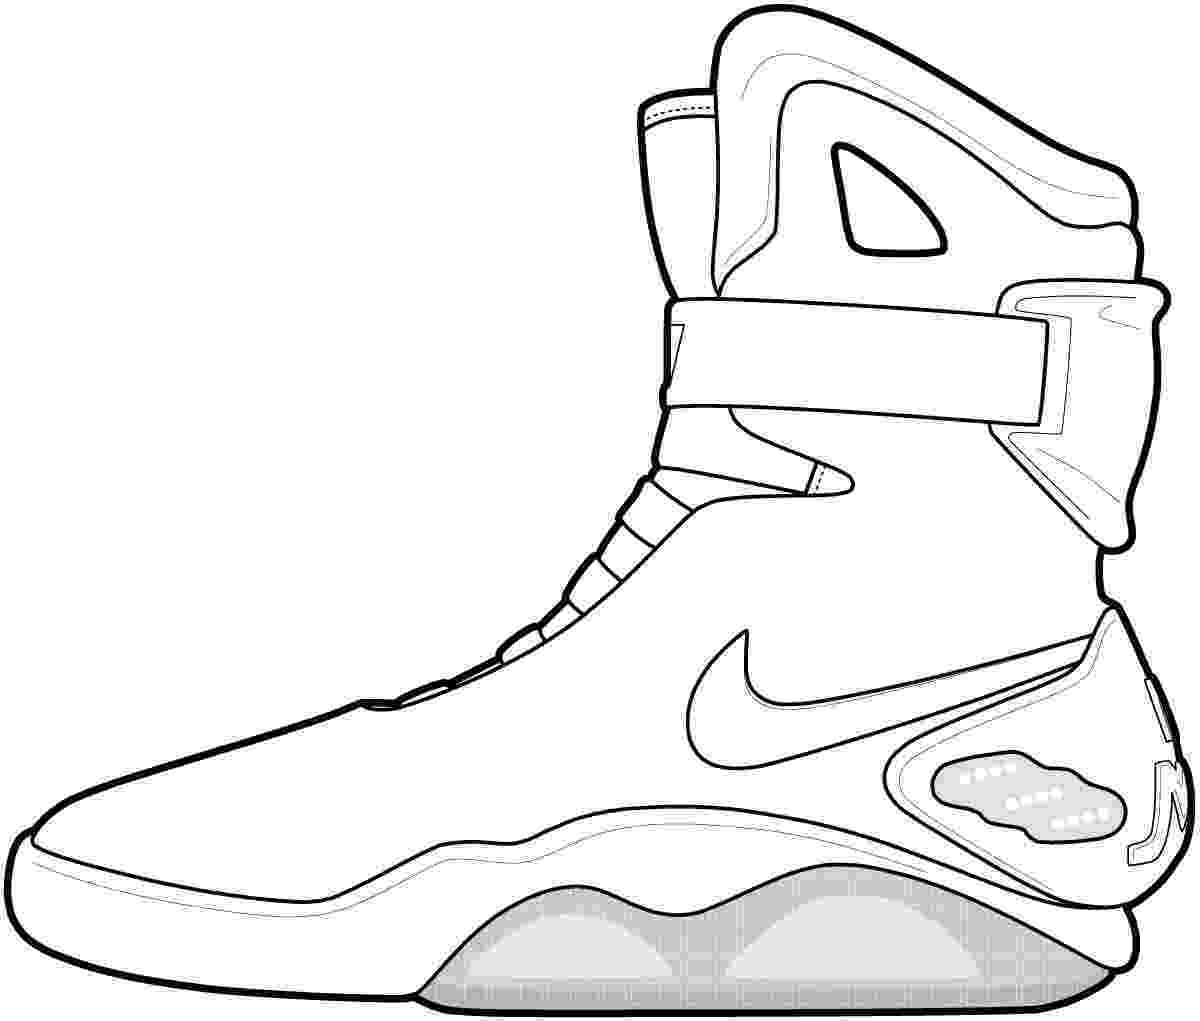 images of shoes to color shoe coloring pages to download and print for free shoes to images color of